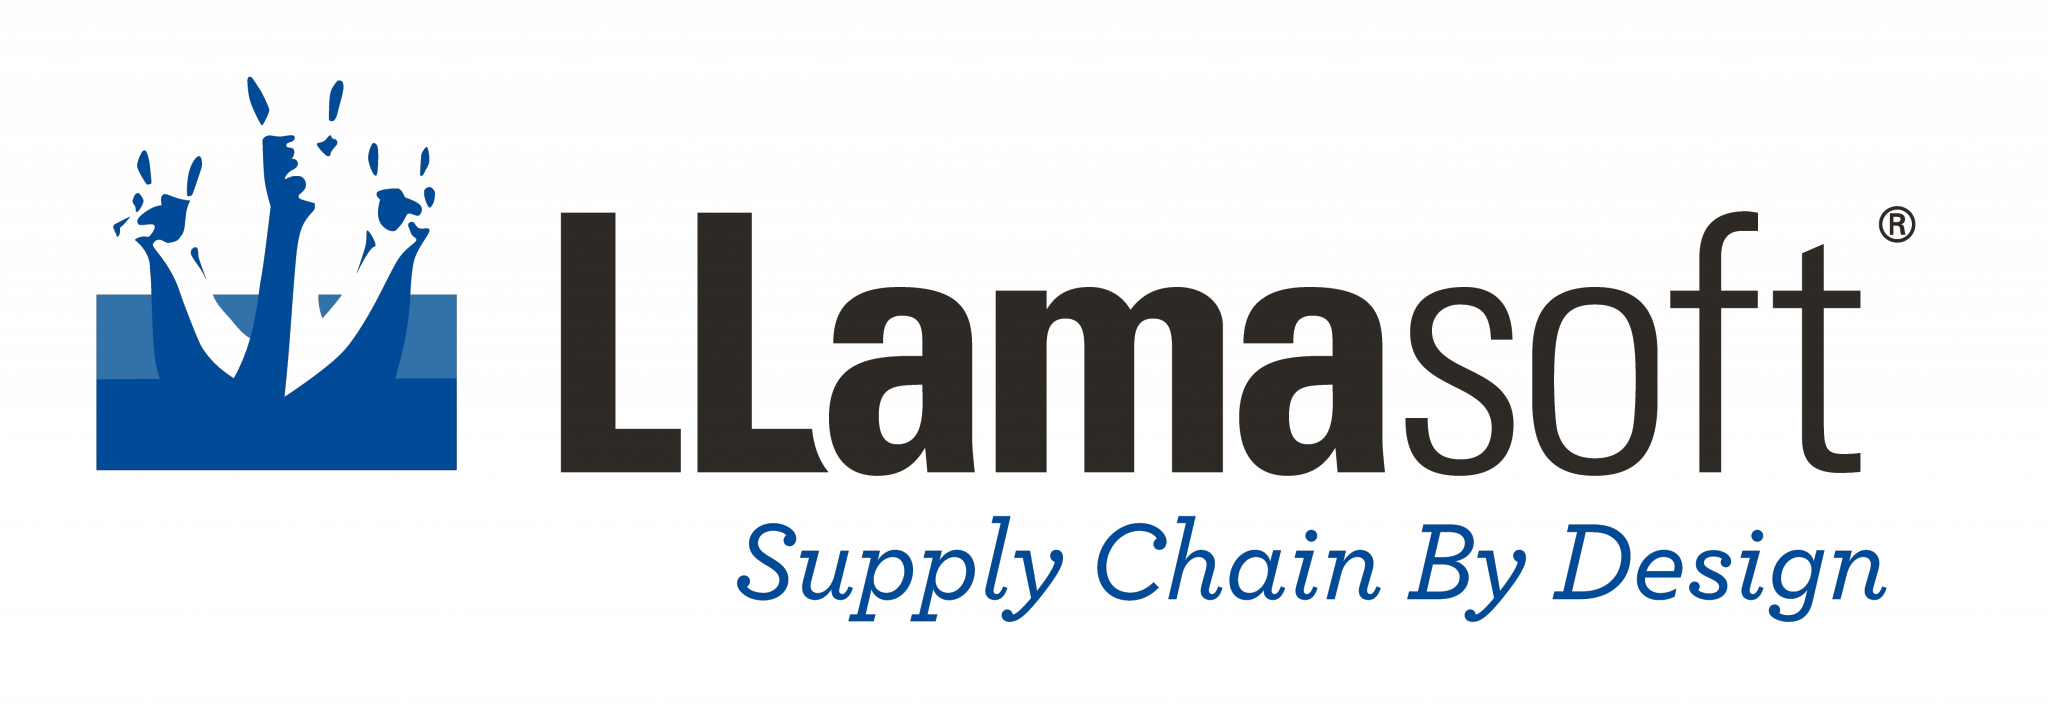 LLamasoft_Logotype_with_Tagline_and_Icon_PMS